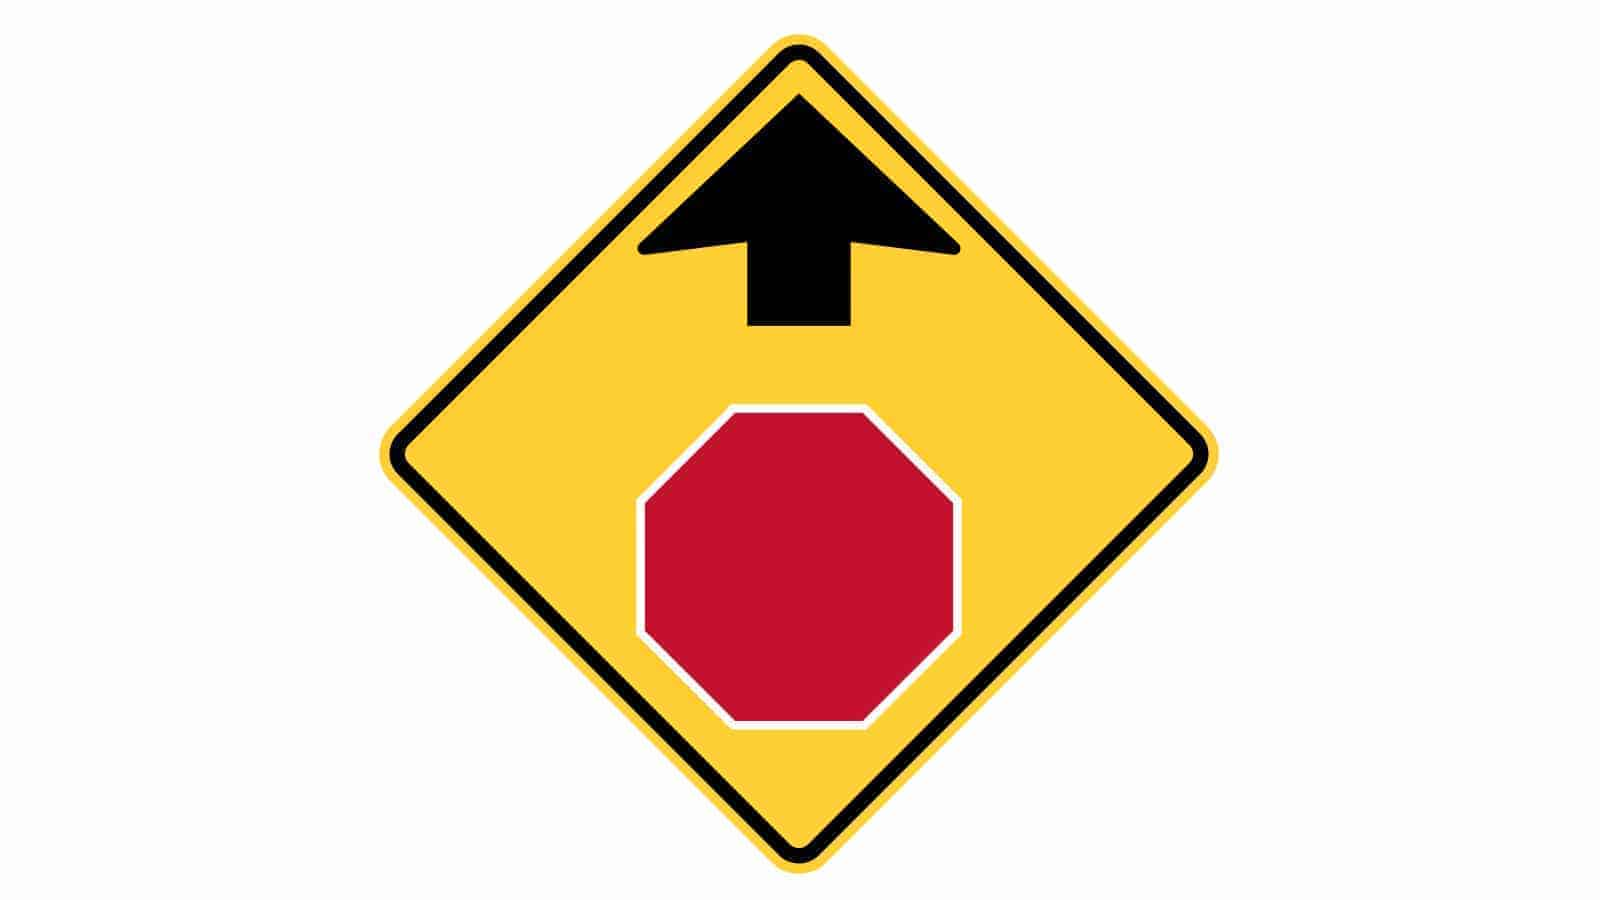 Warning sign STOP sign ahead